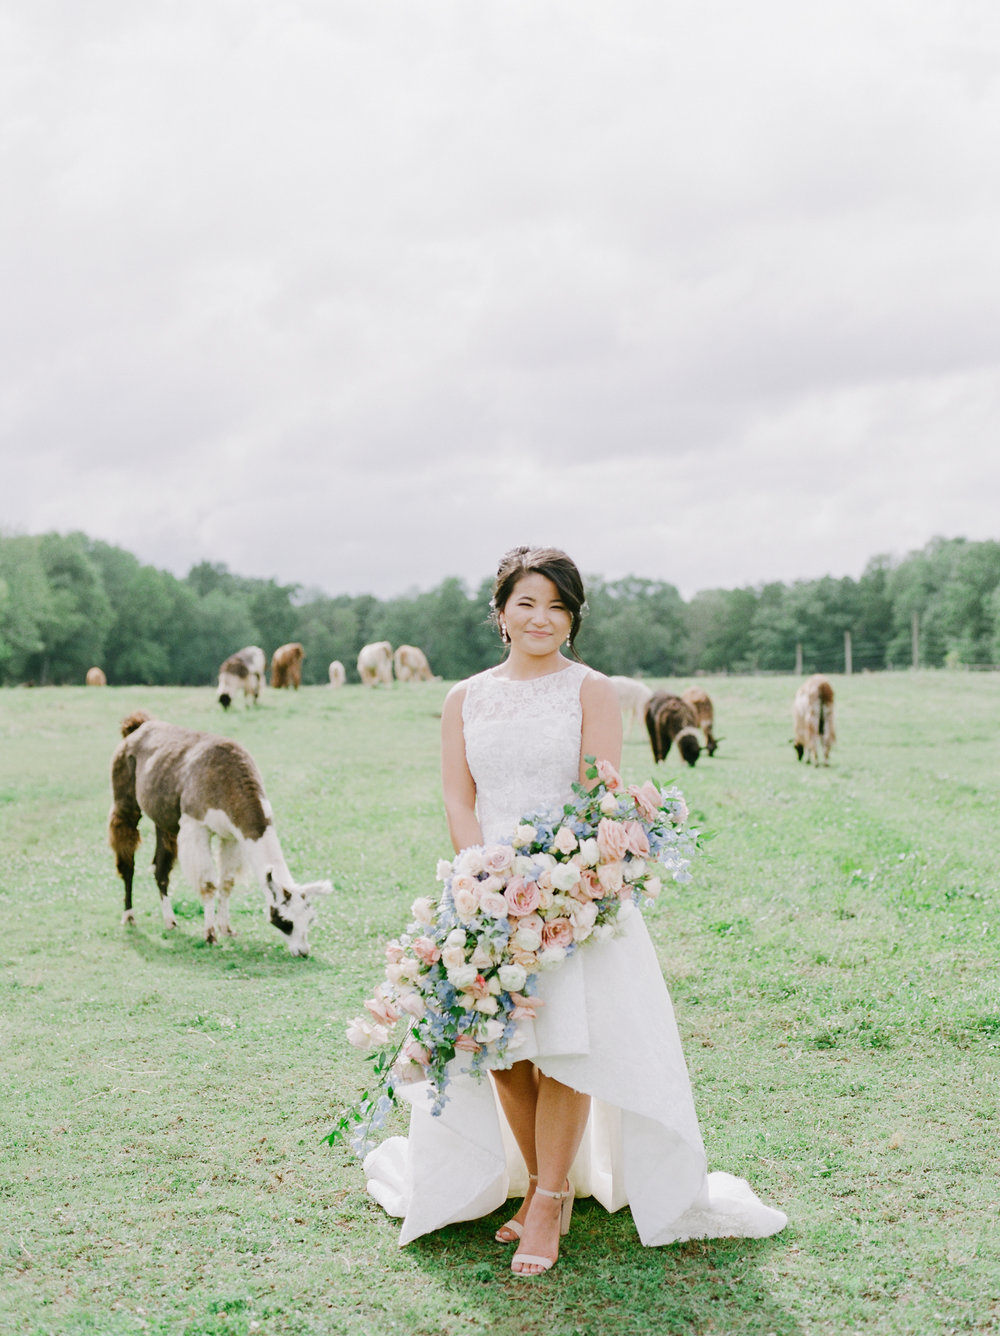 nj_alpaca-farm_wedding_inspiration-70.jpg